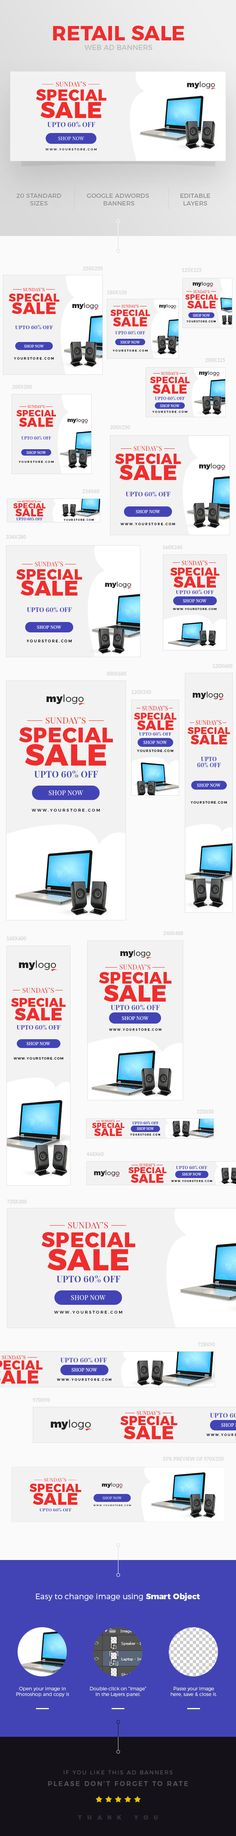 A set of Retail Sale Ad Banners is comes with 20 standard dimensions which also meet Google adwords banners sizes, and it can use for multipurpose retail sale ad banners. It included all the layered psd file where you can easily change its text, color & shapes as per your requirements.  #ad #ad banner #ad banners #ads #advertisement #banner #clean #commercial #discount #Discount banner #layered #modern #multipurpose #offer